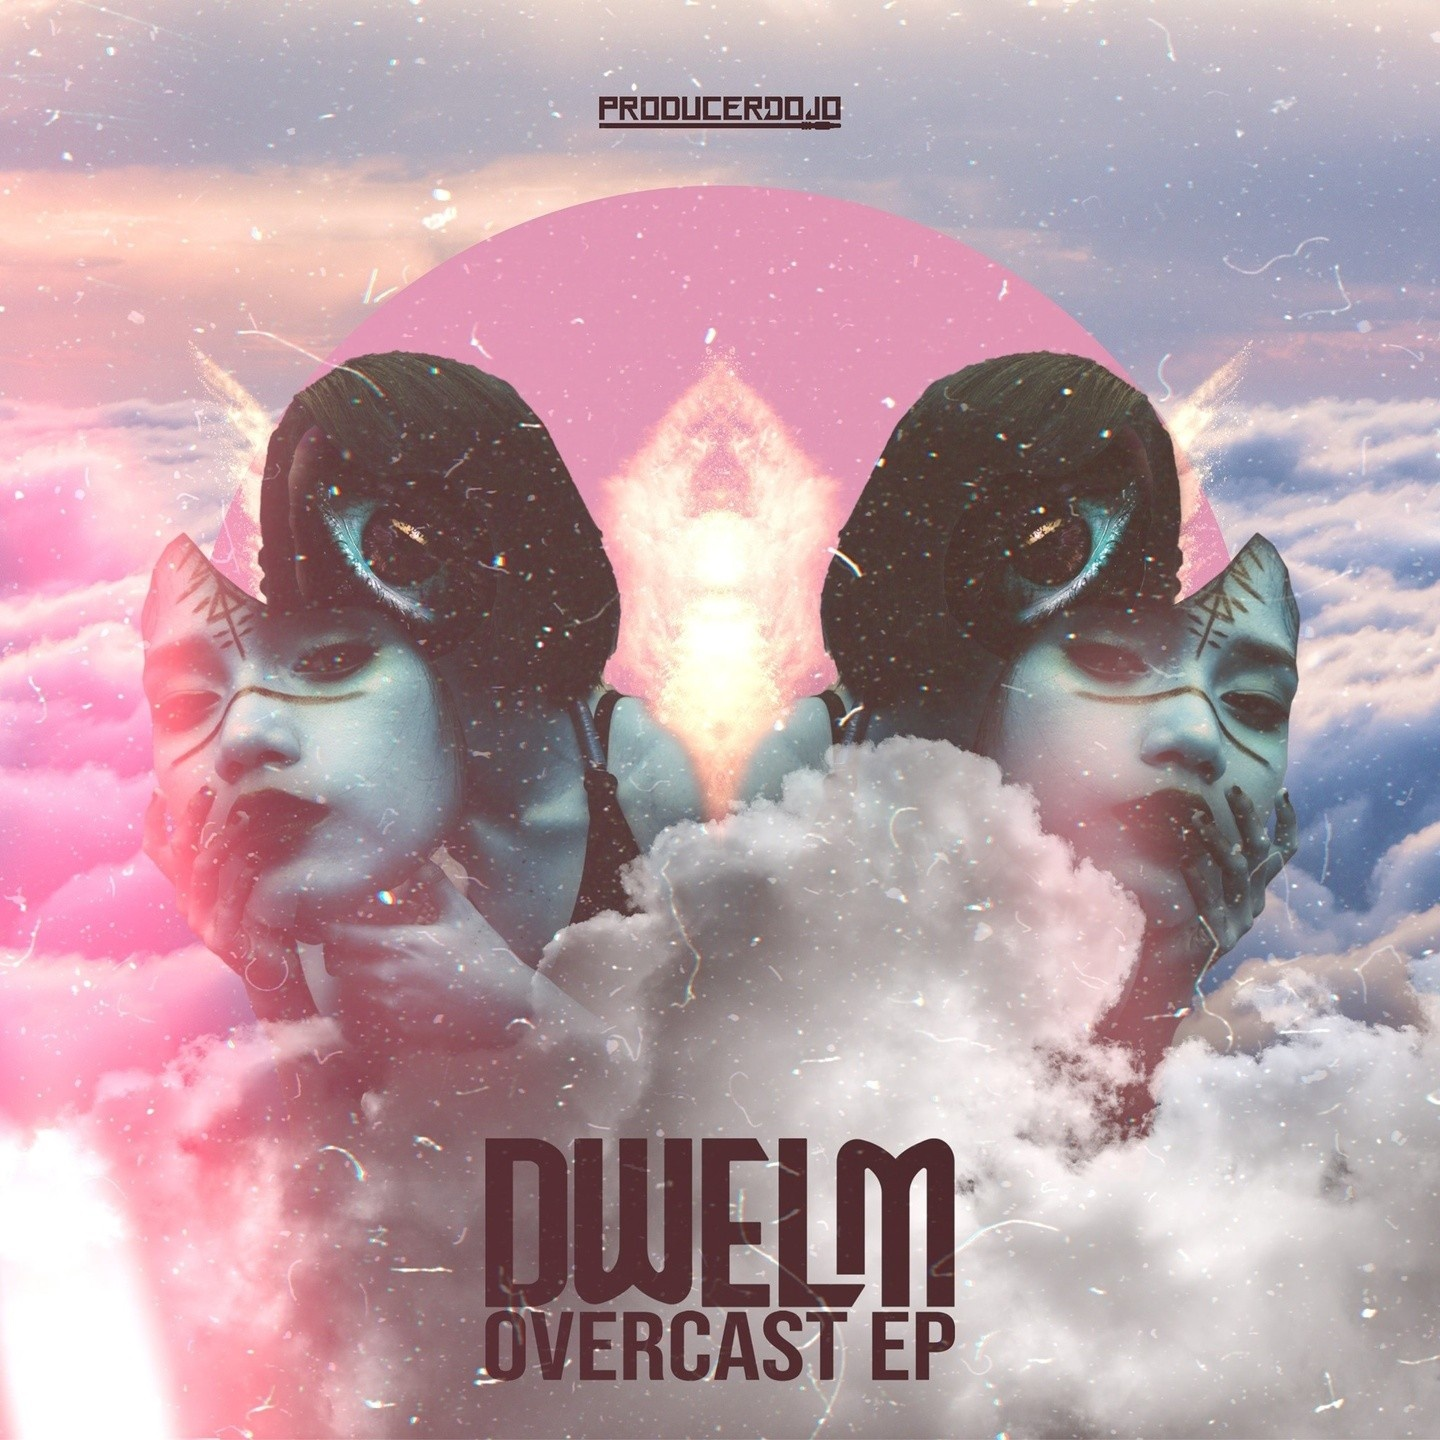 New EDM Music Overcast EP by Dwelm